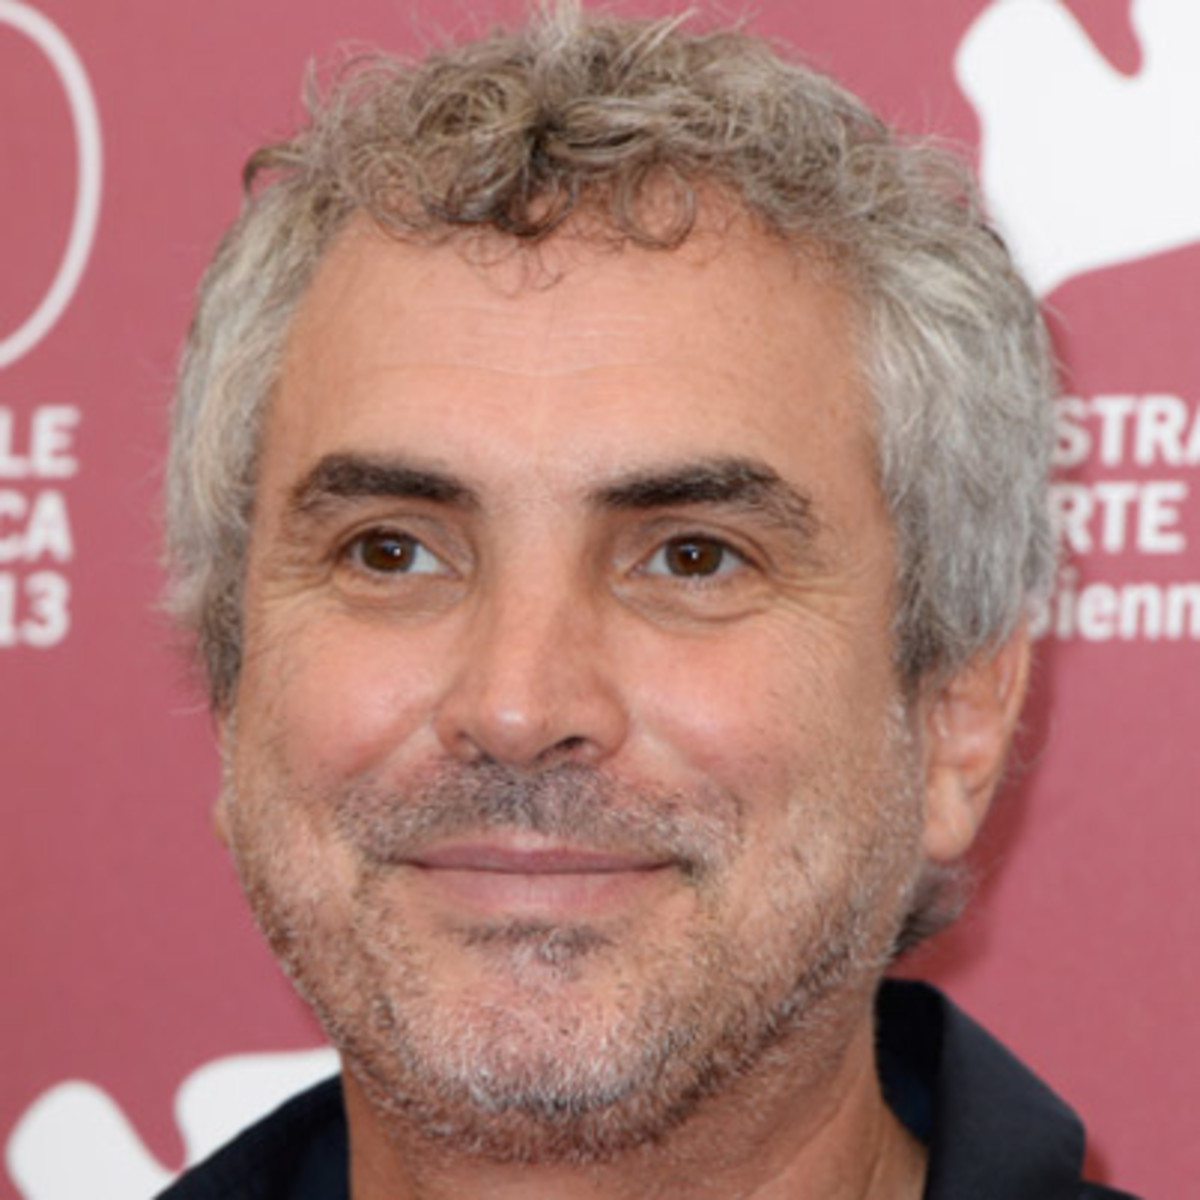 alfonso cuarón screenwriter director producer biography